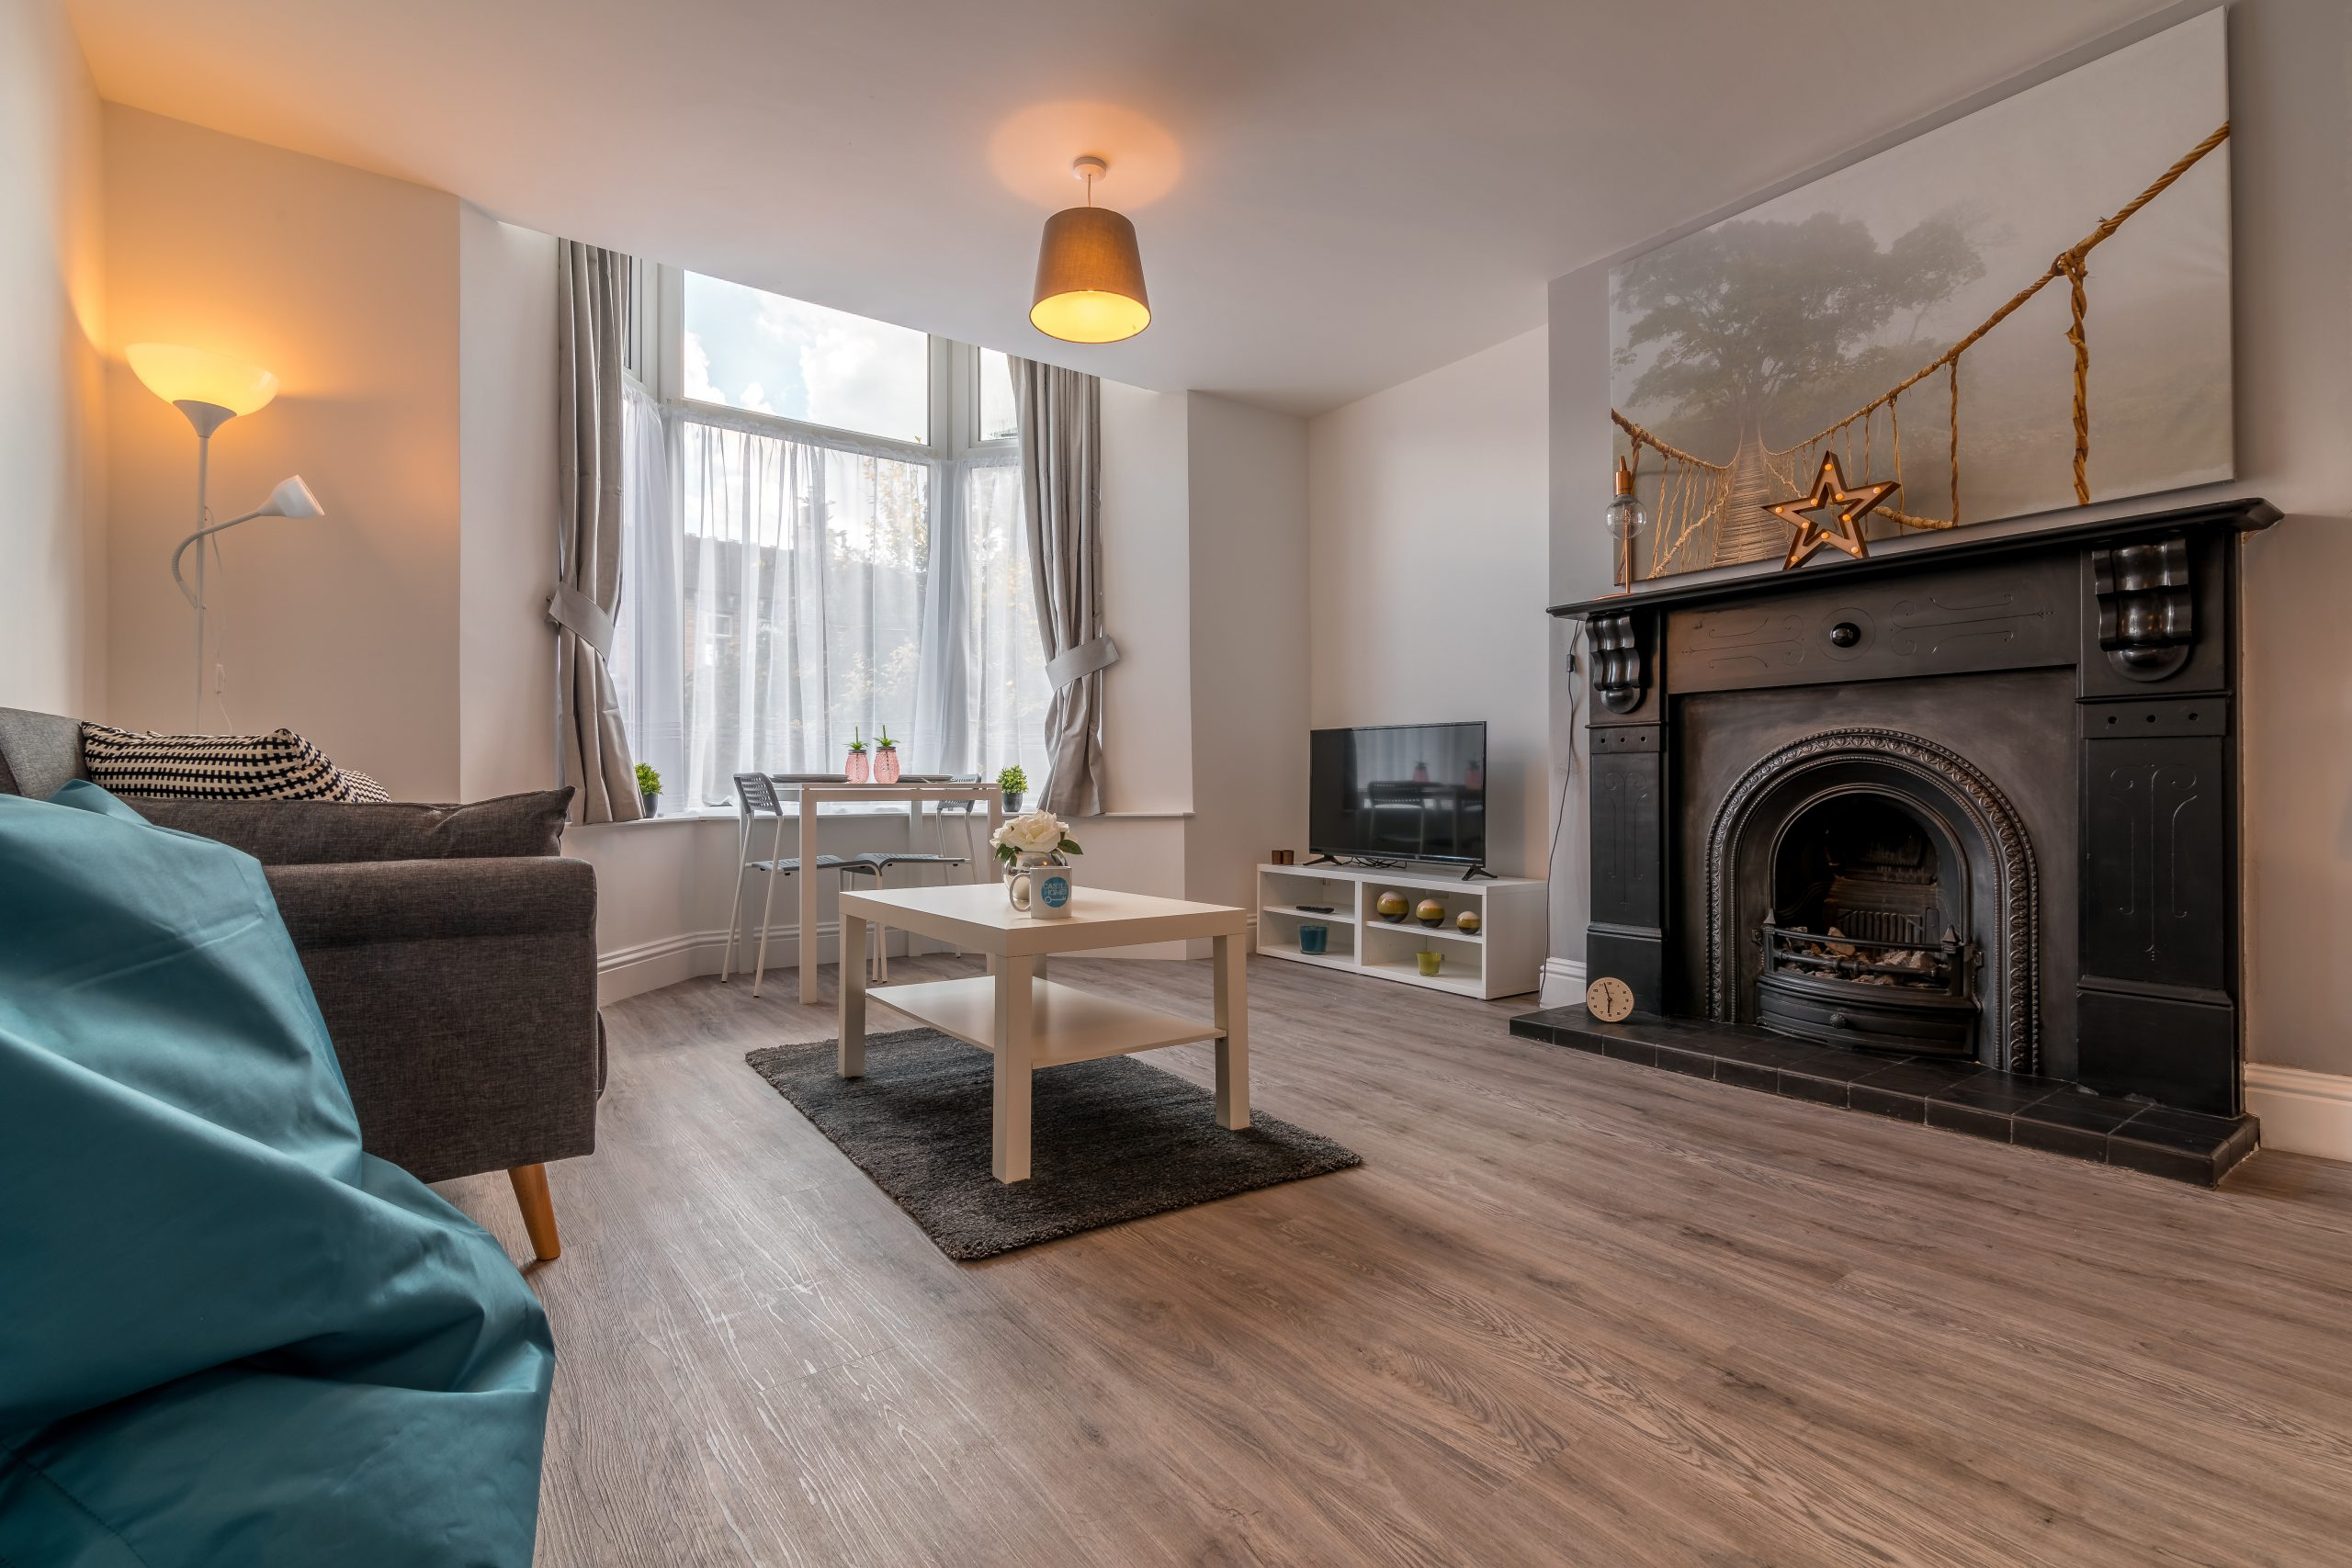 student houses hull, all inclusive student accommodation hull, en suite student accommodation hull